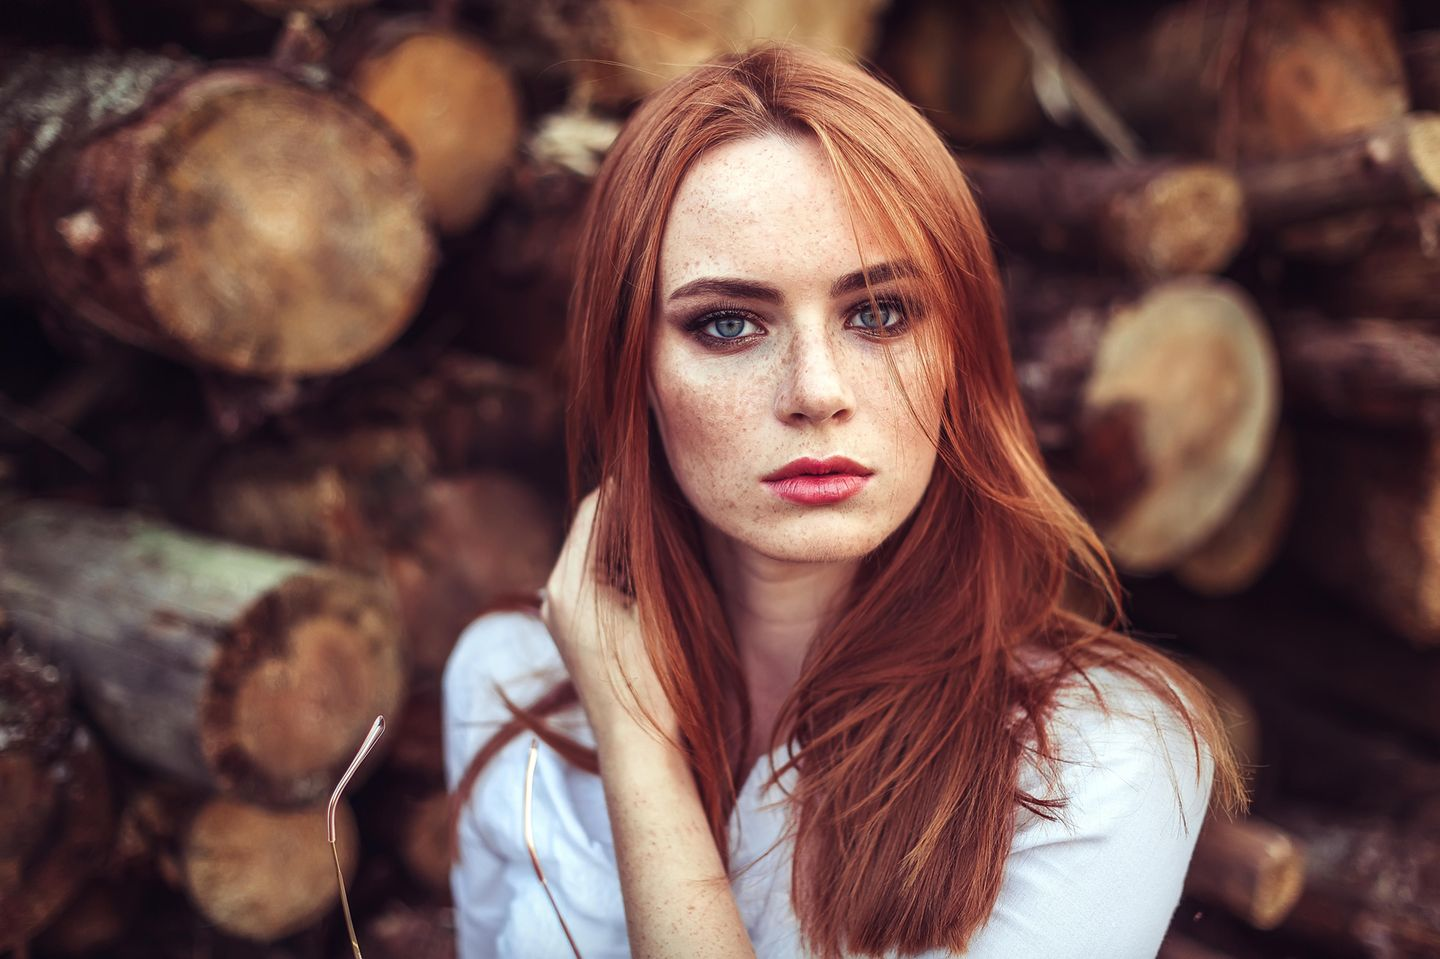 Home remedies for pigment spots: woman with freckles